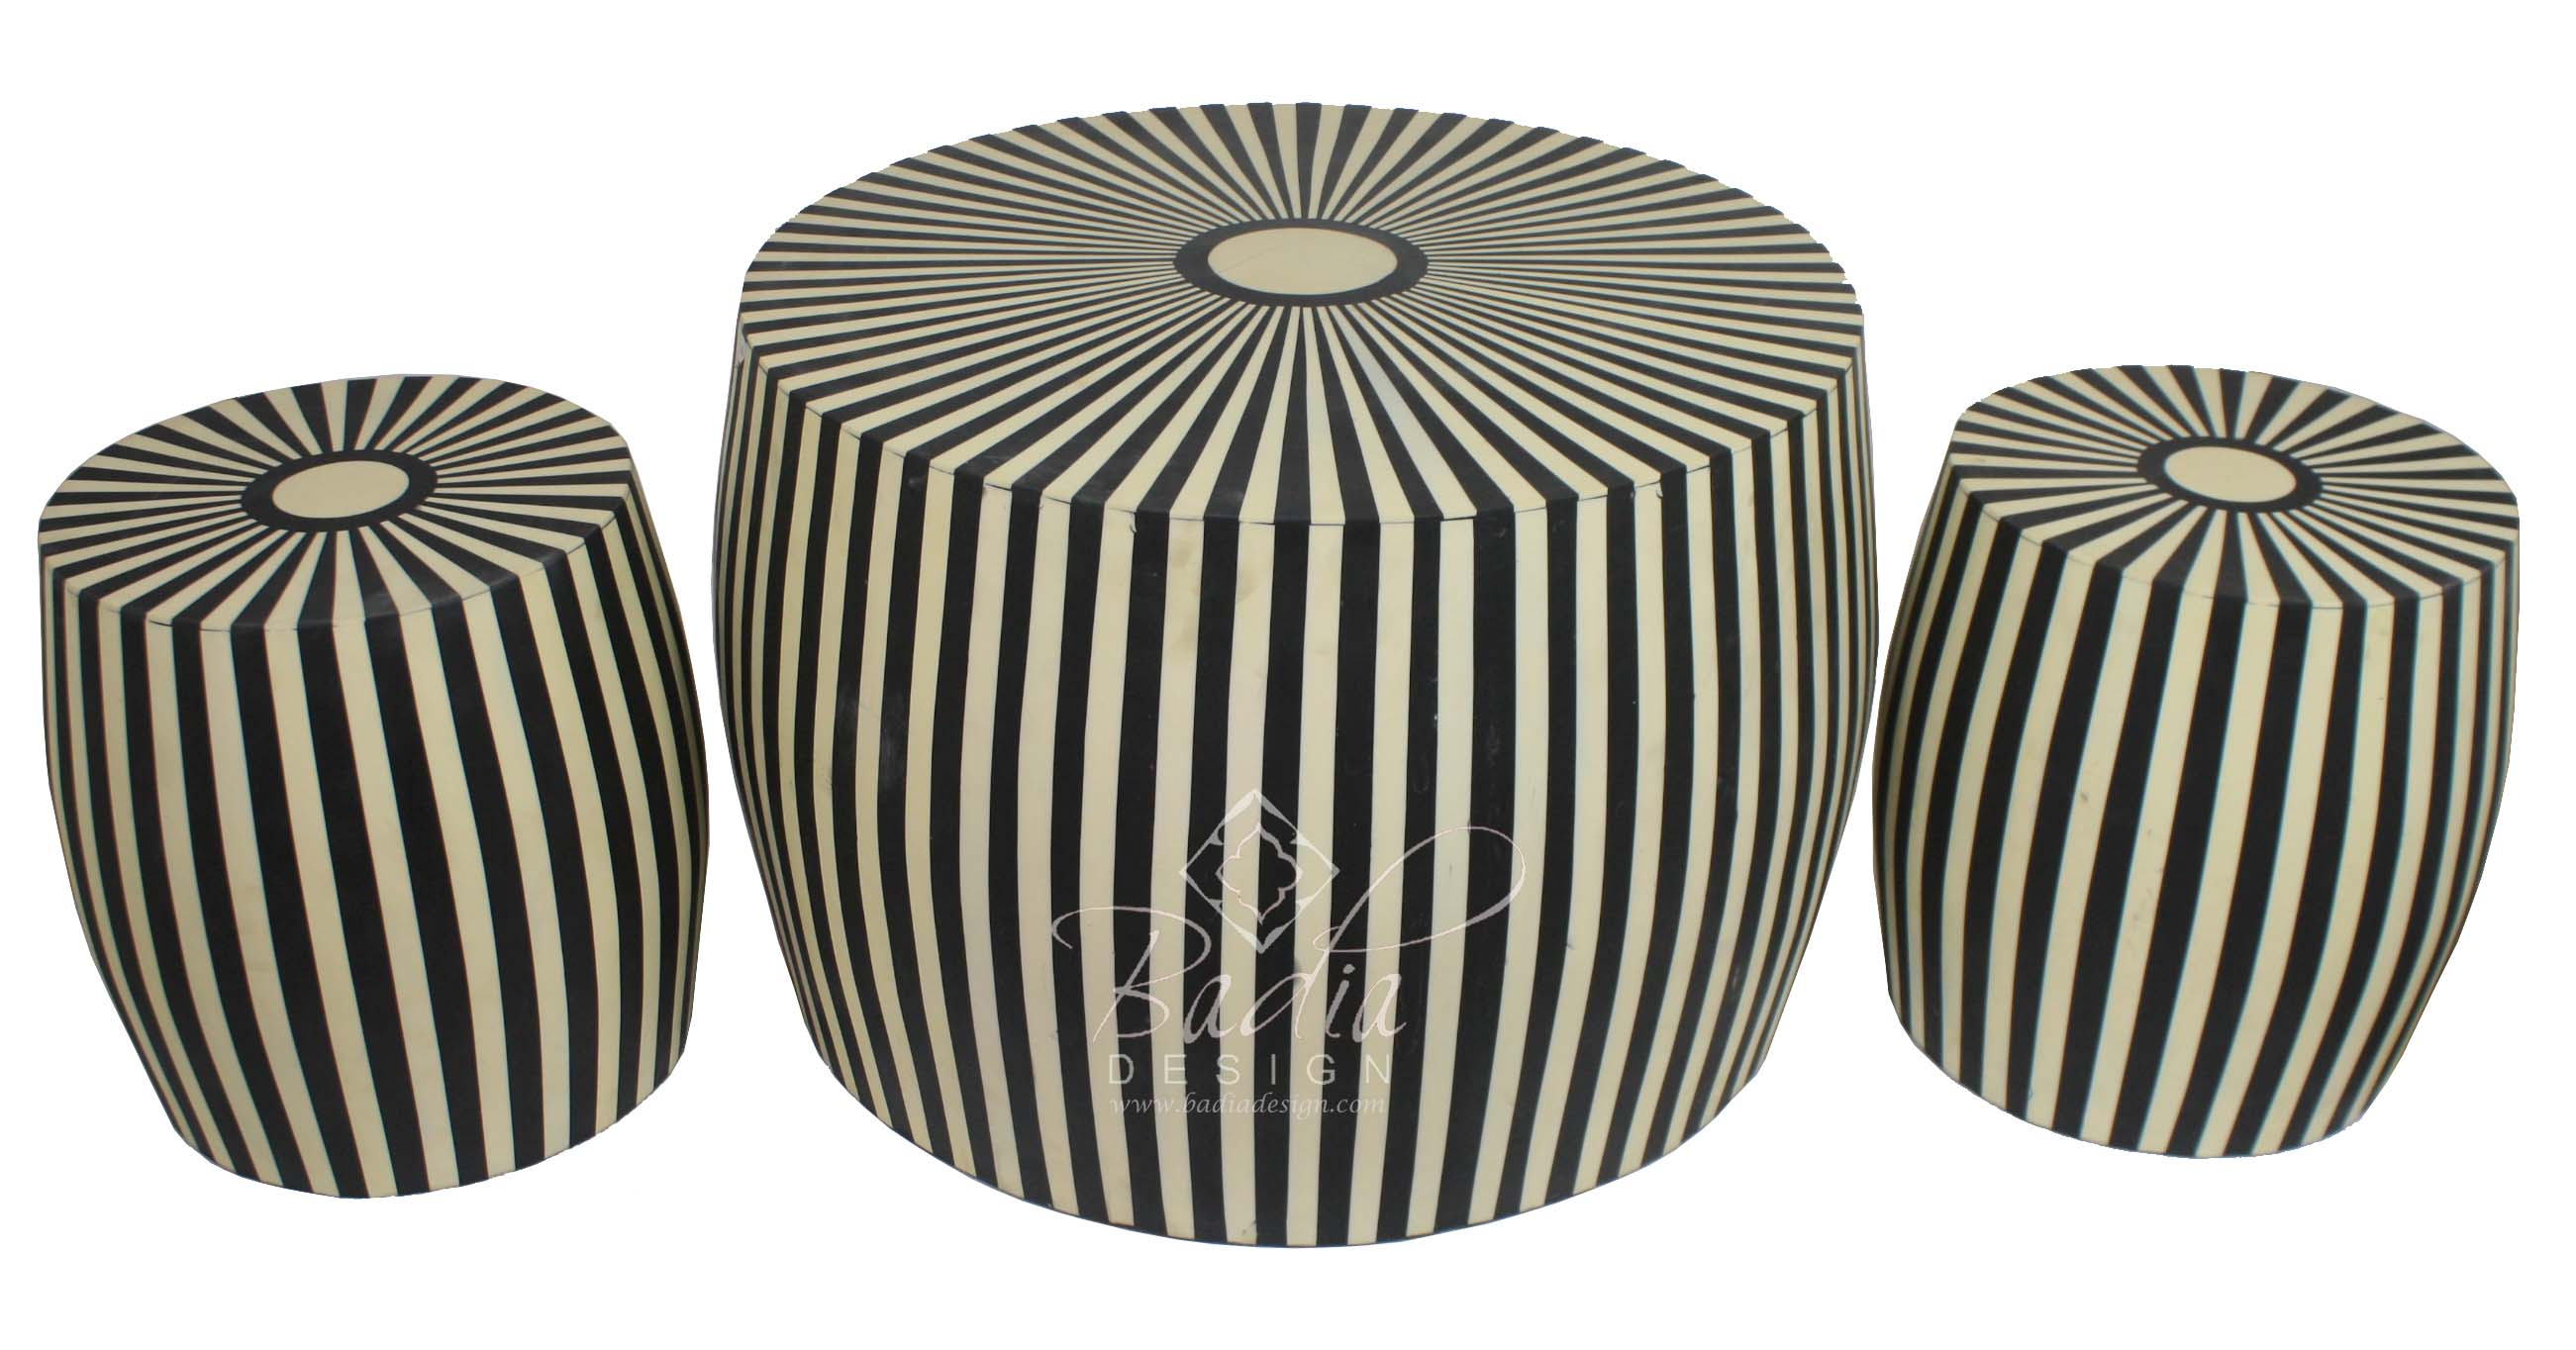 round-camel-bone-ottoman-and-coffee-table-mop-st099-2.jpg